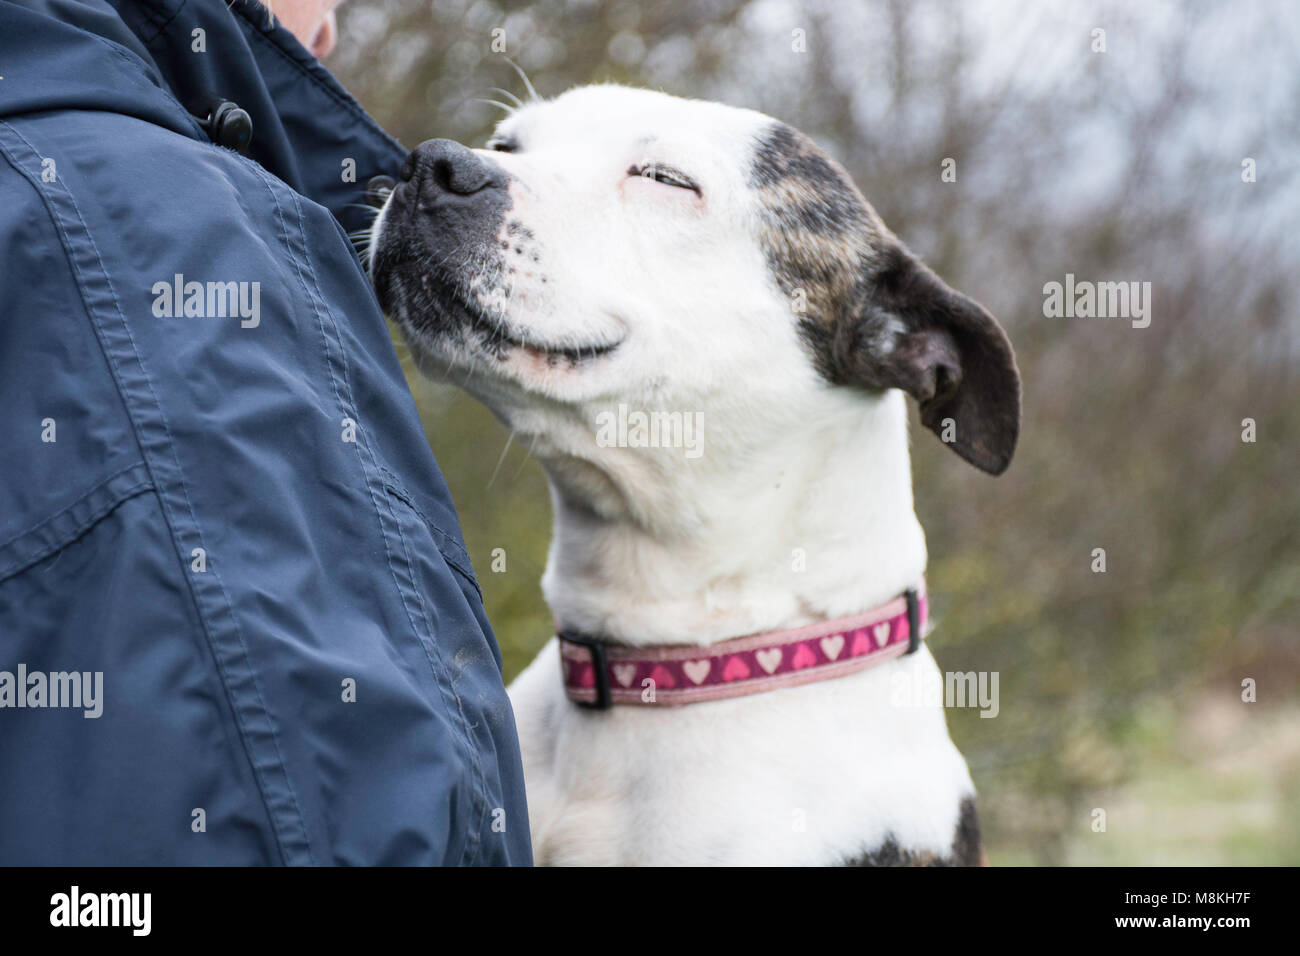 smiling dog - Stock Image